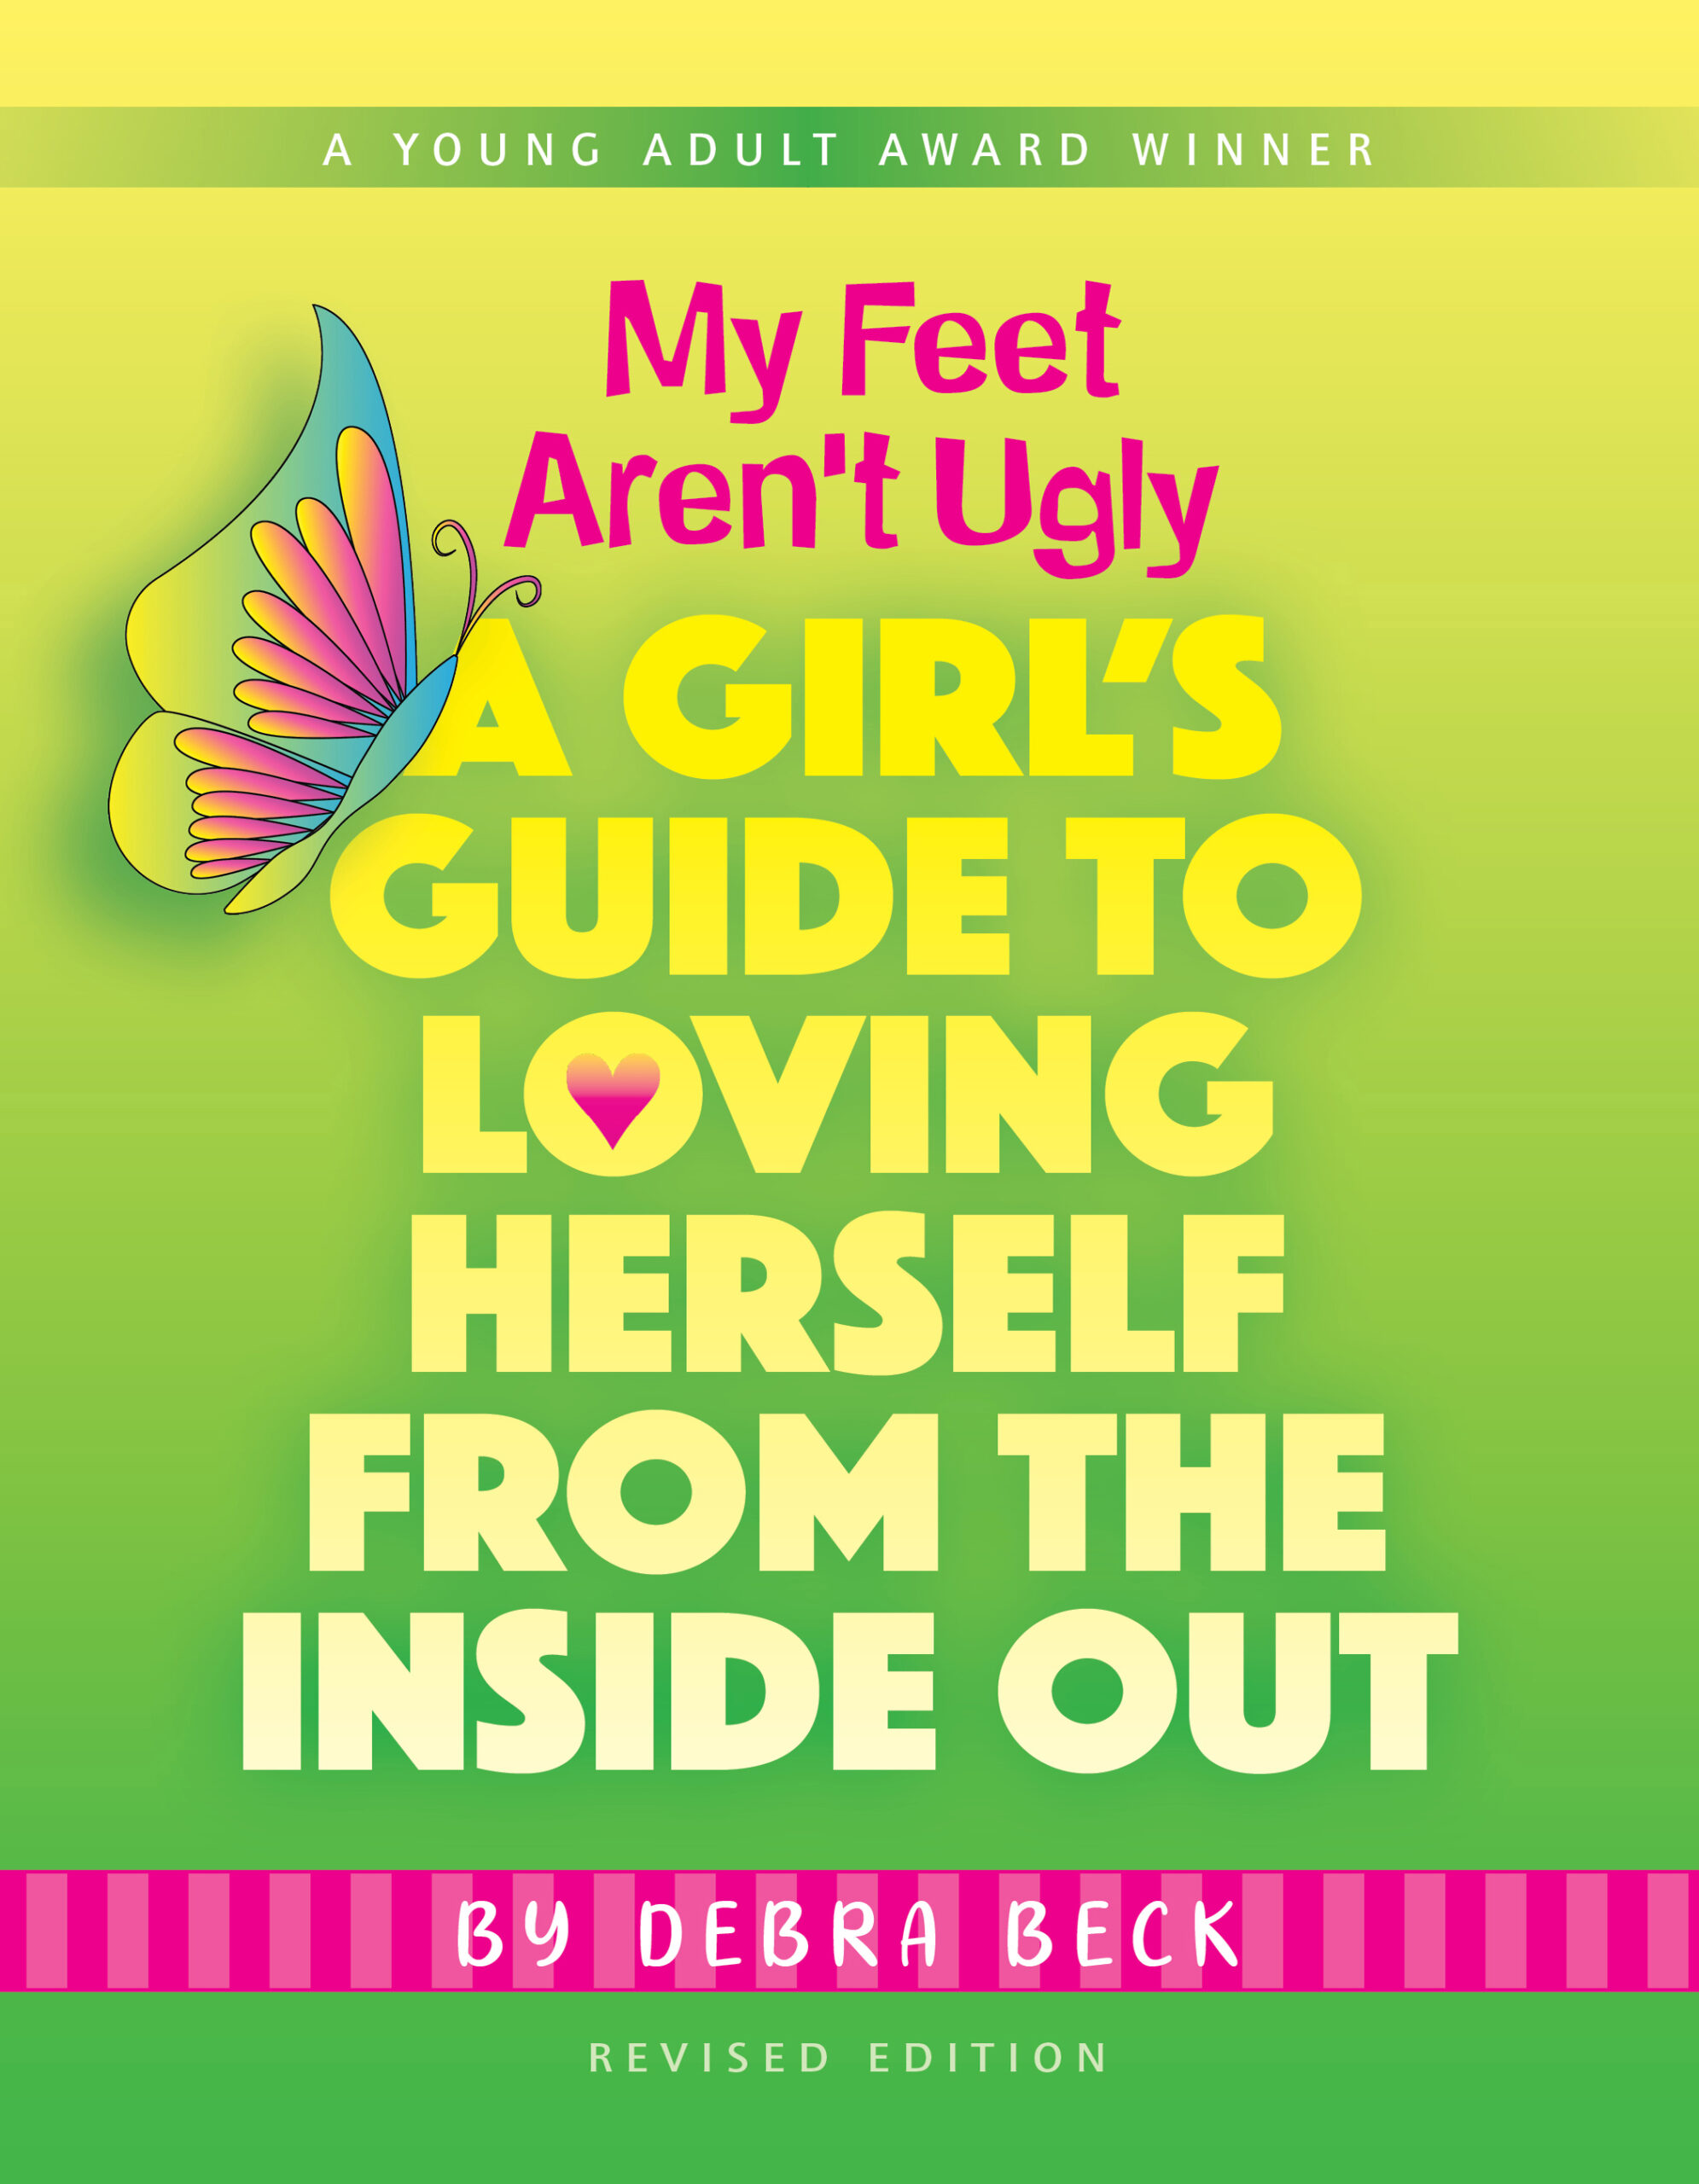 My Feet Aren't Ugly by Debra Beck